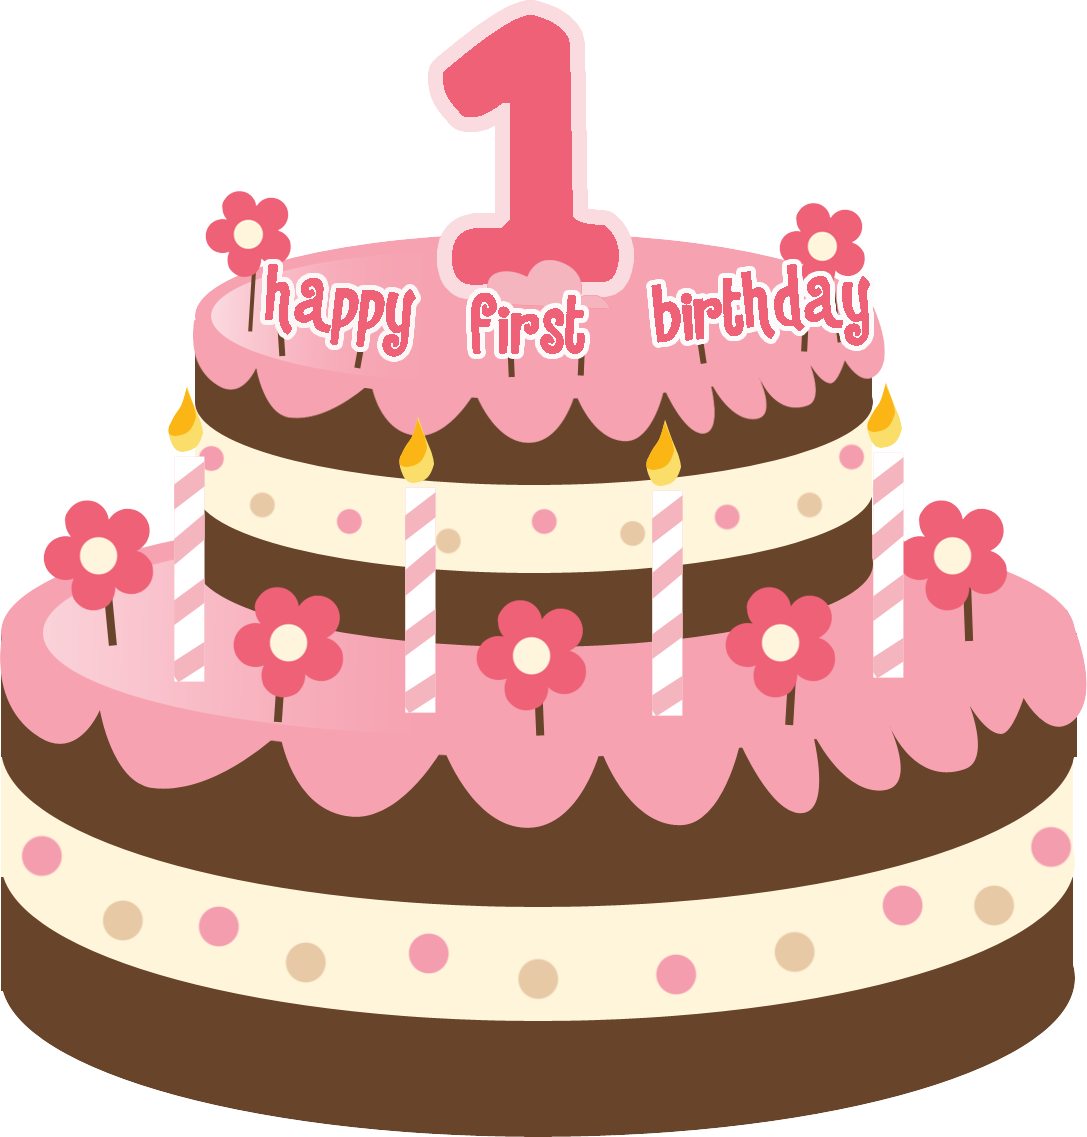 1st Birthday Cupcake Clip Art | Clipart Panda - Free Clipart Images